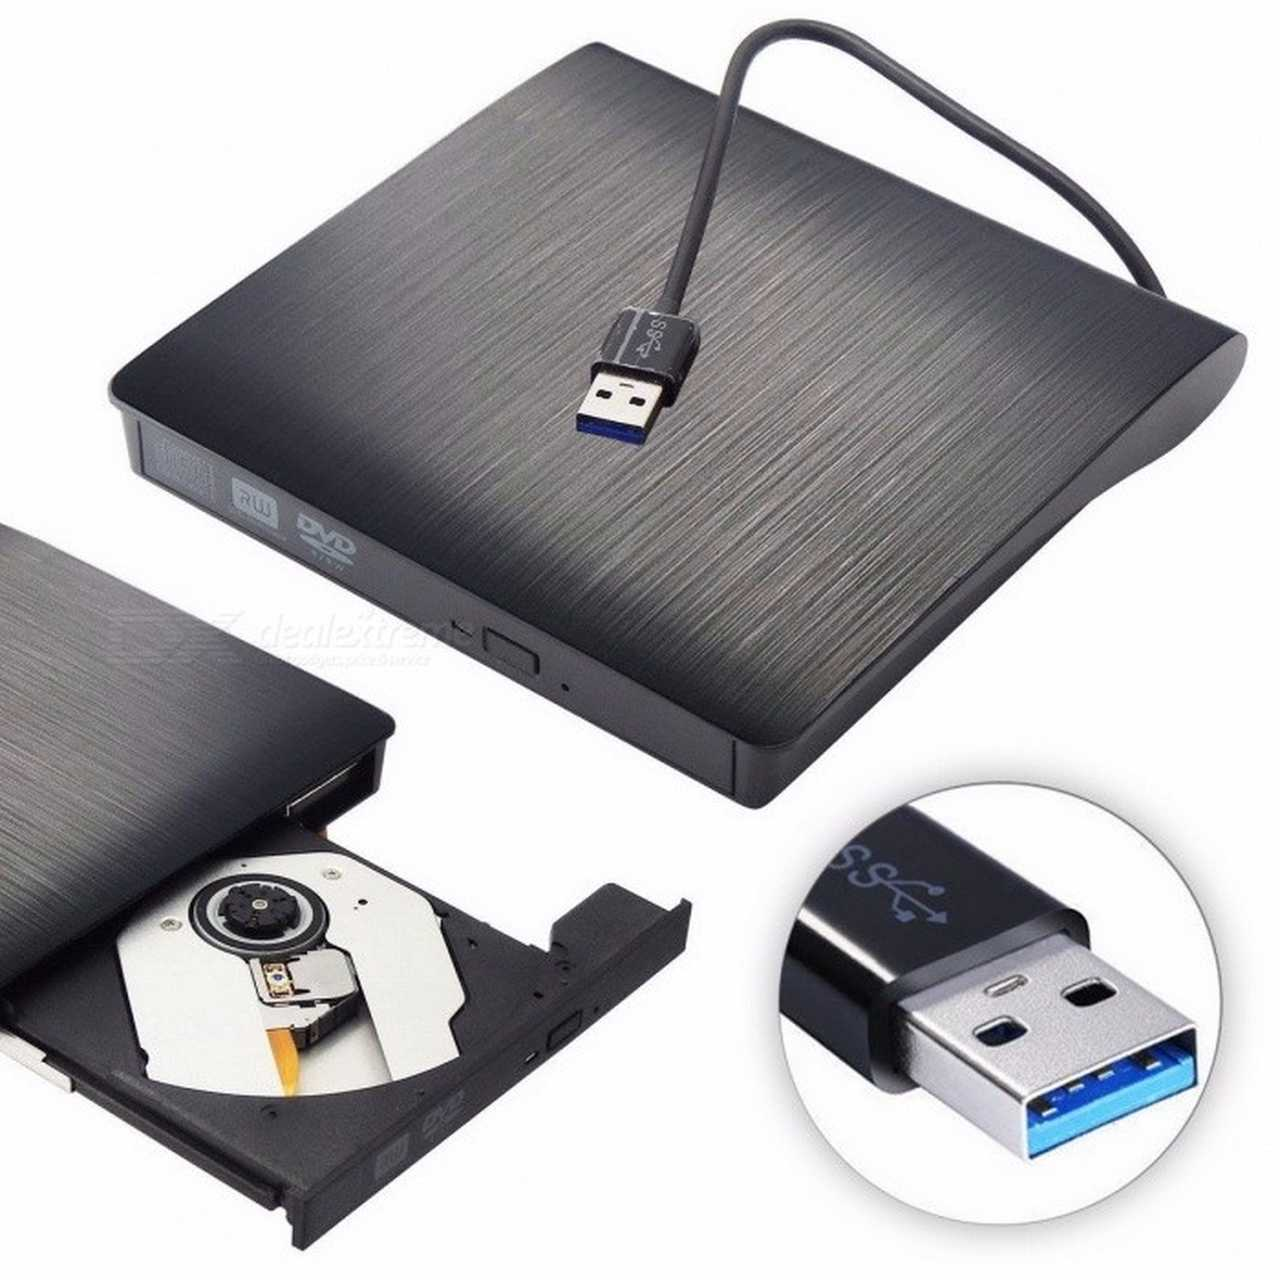 GRAVADOR DE DVD EXTERNO SLIM F-NEW LEITOR CD DVD PORTATIL